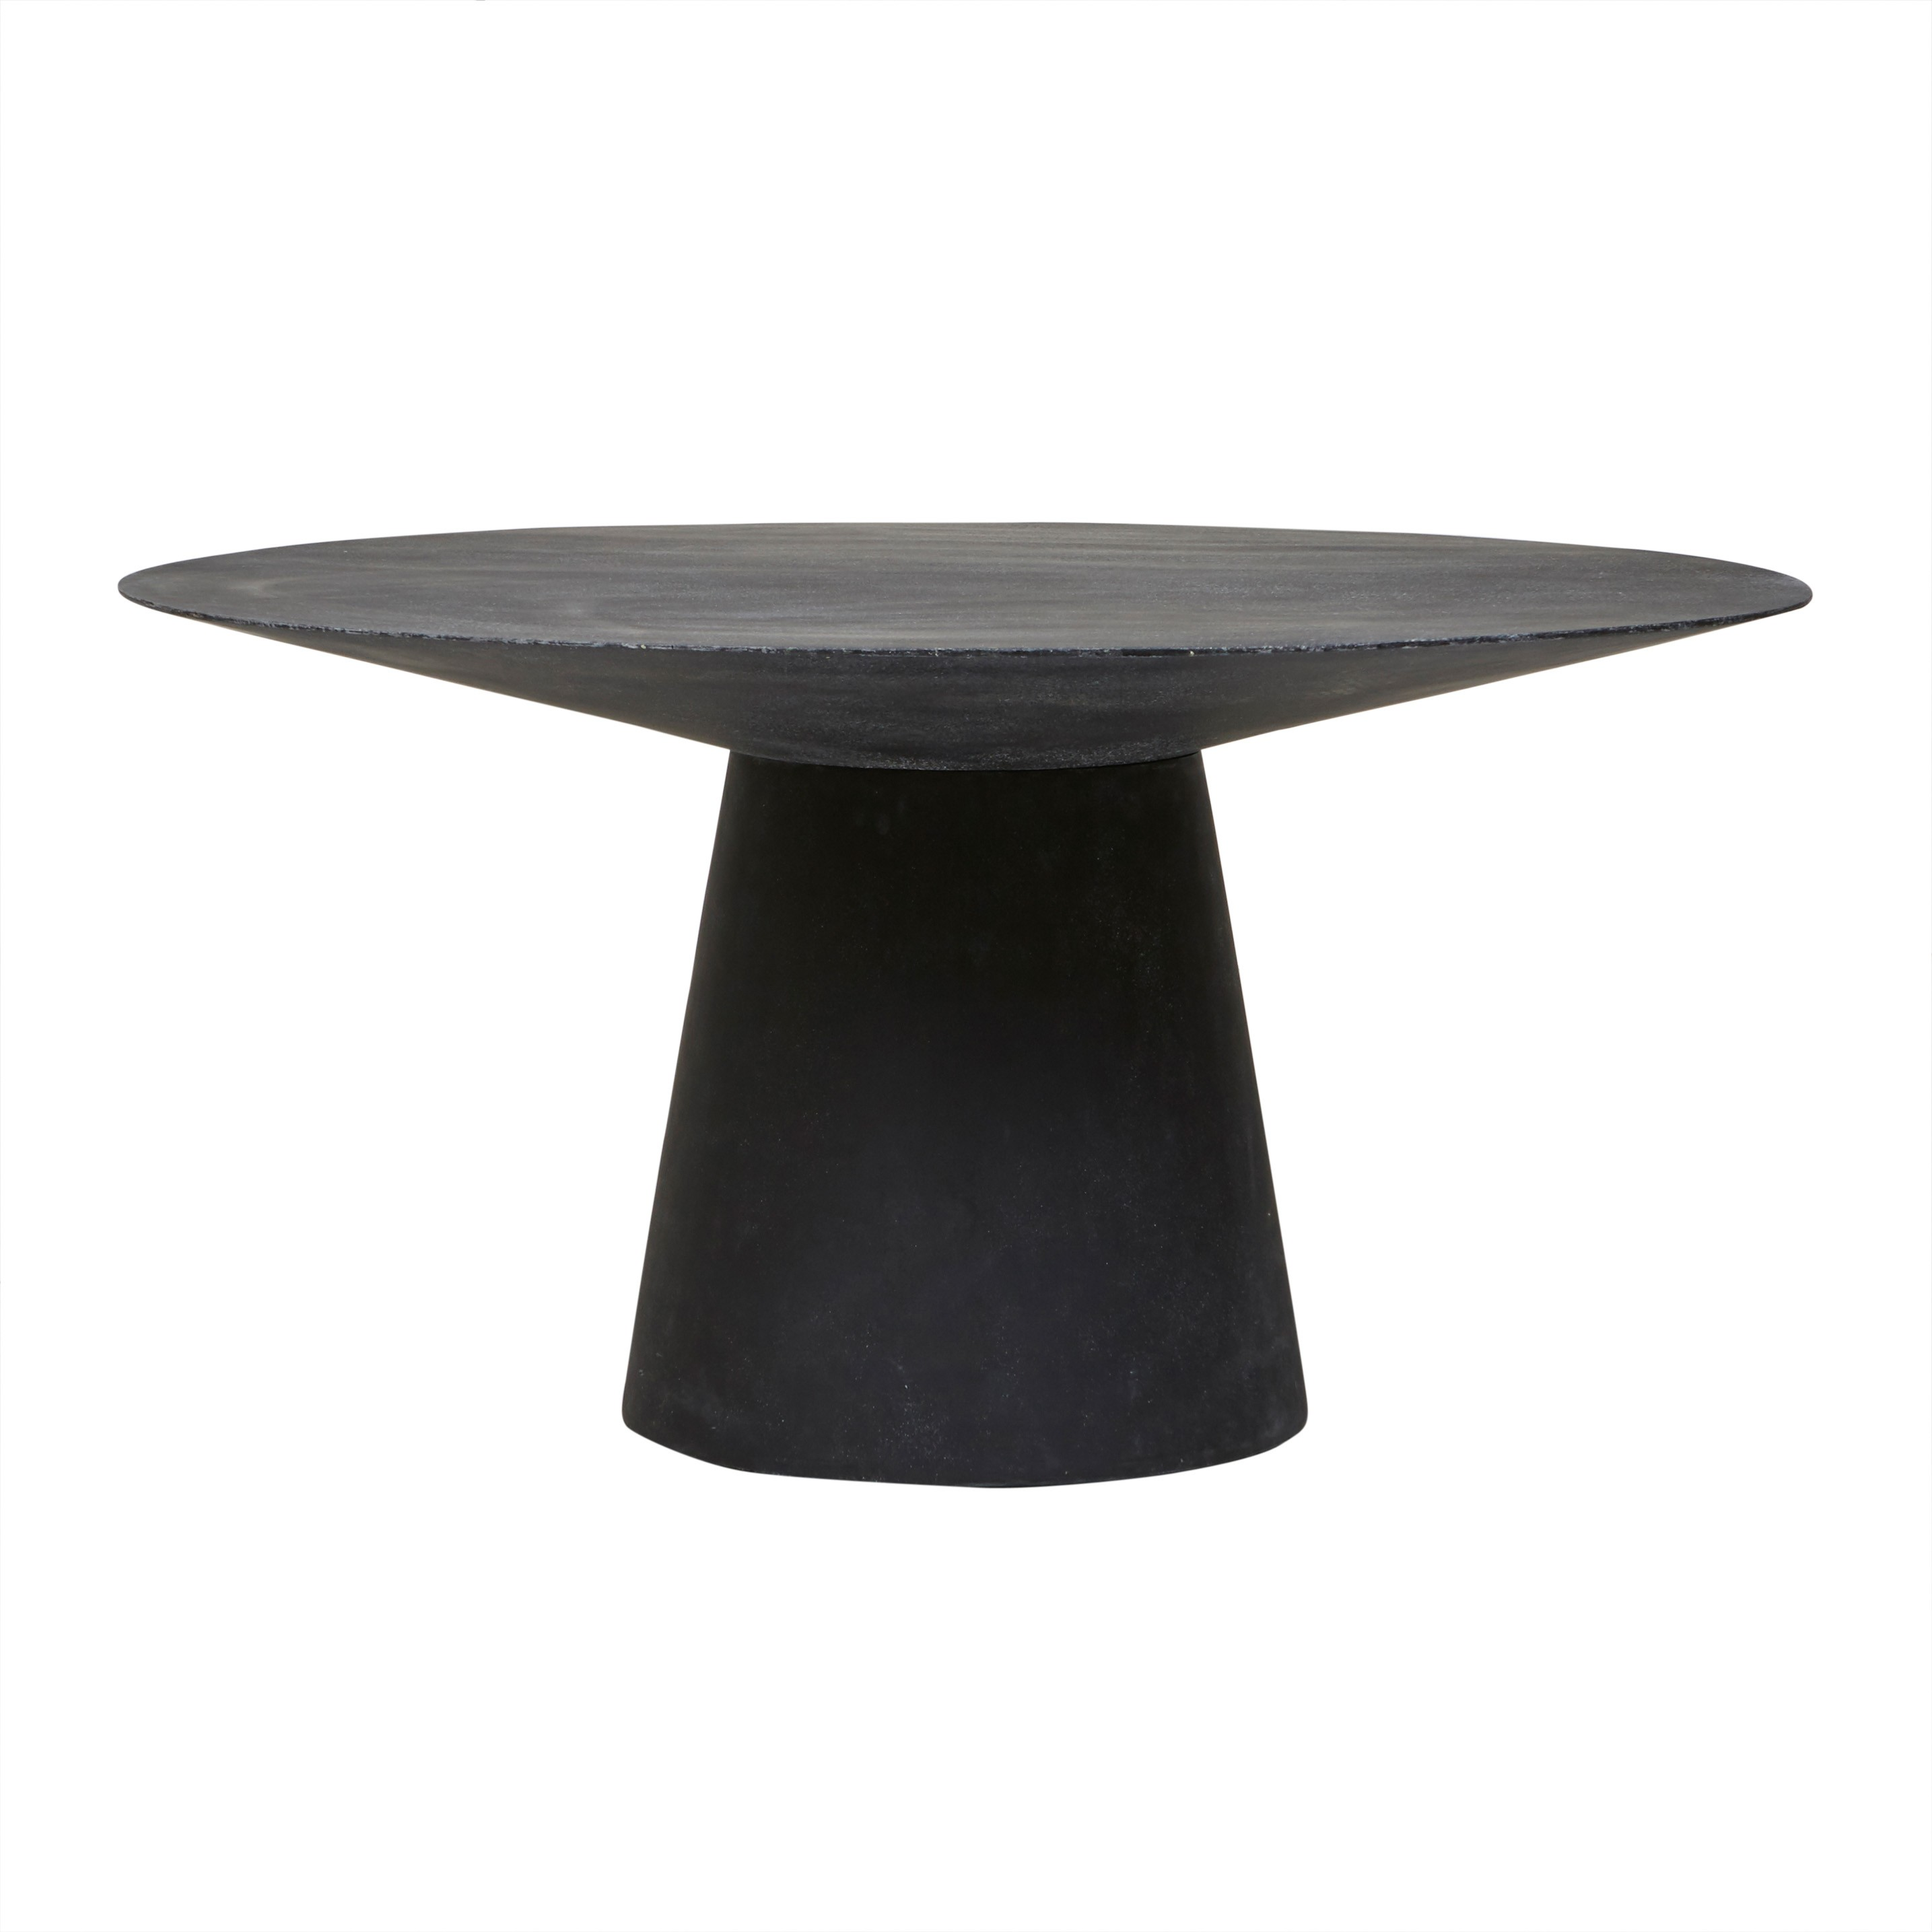 Furniture Hero-Images Dining-Tables livorno-round-03